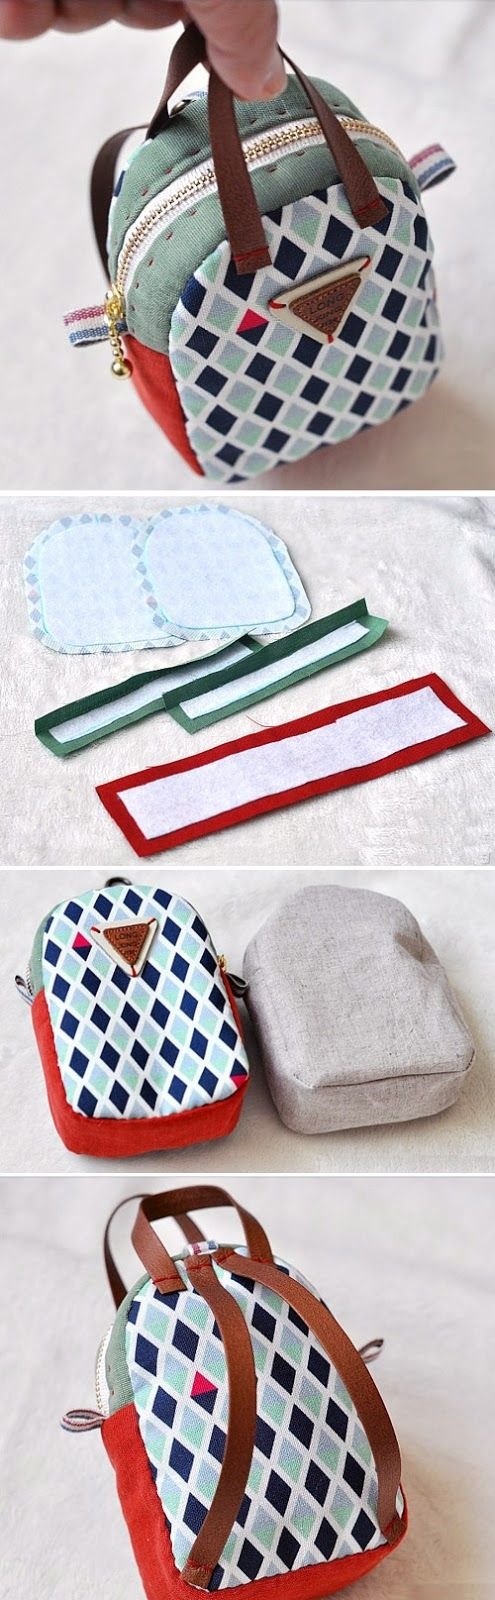 Diy Coin Purse No Sew Make a Mini Back Pack ...